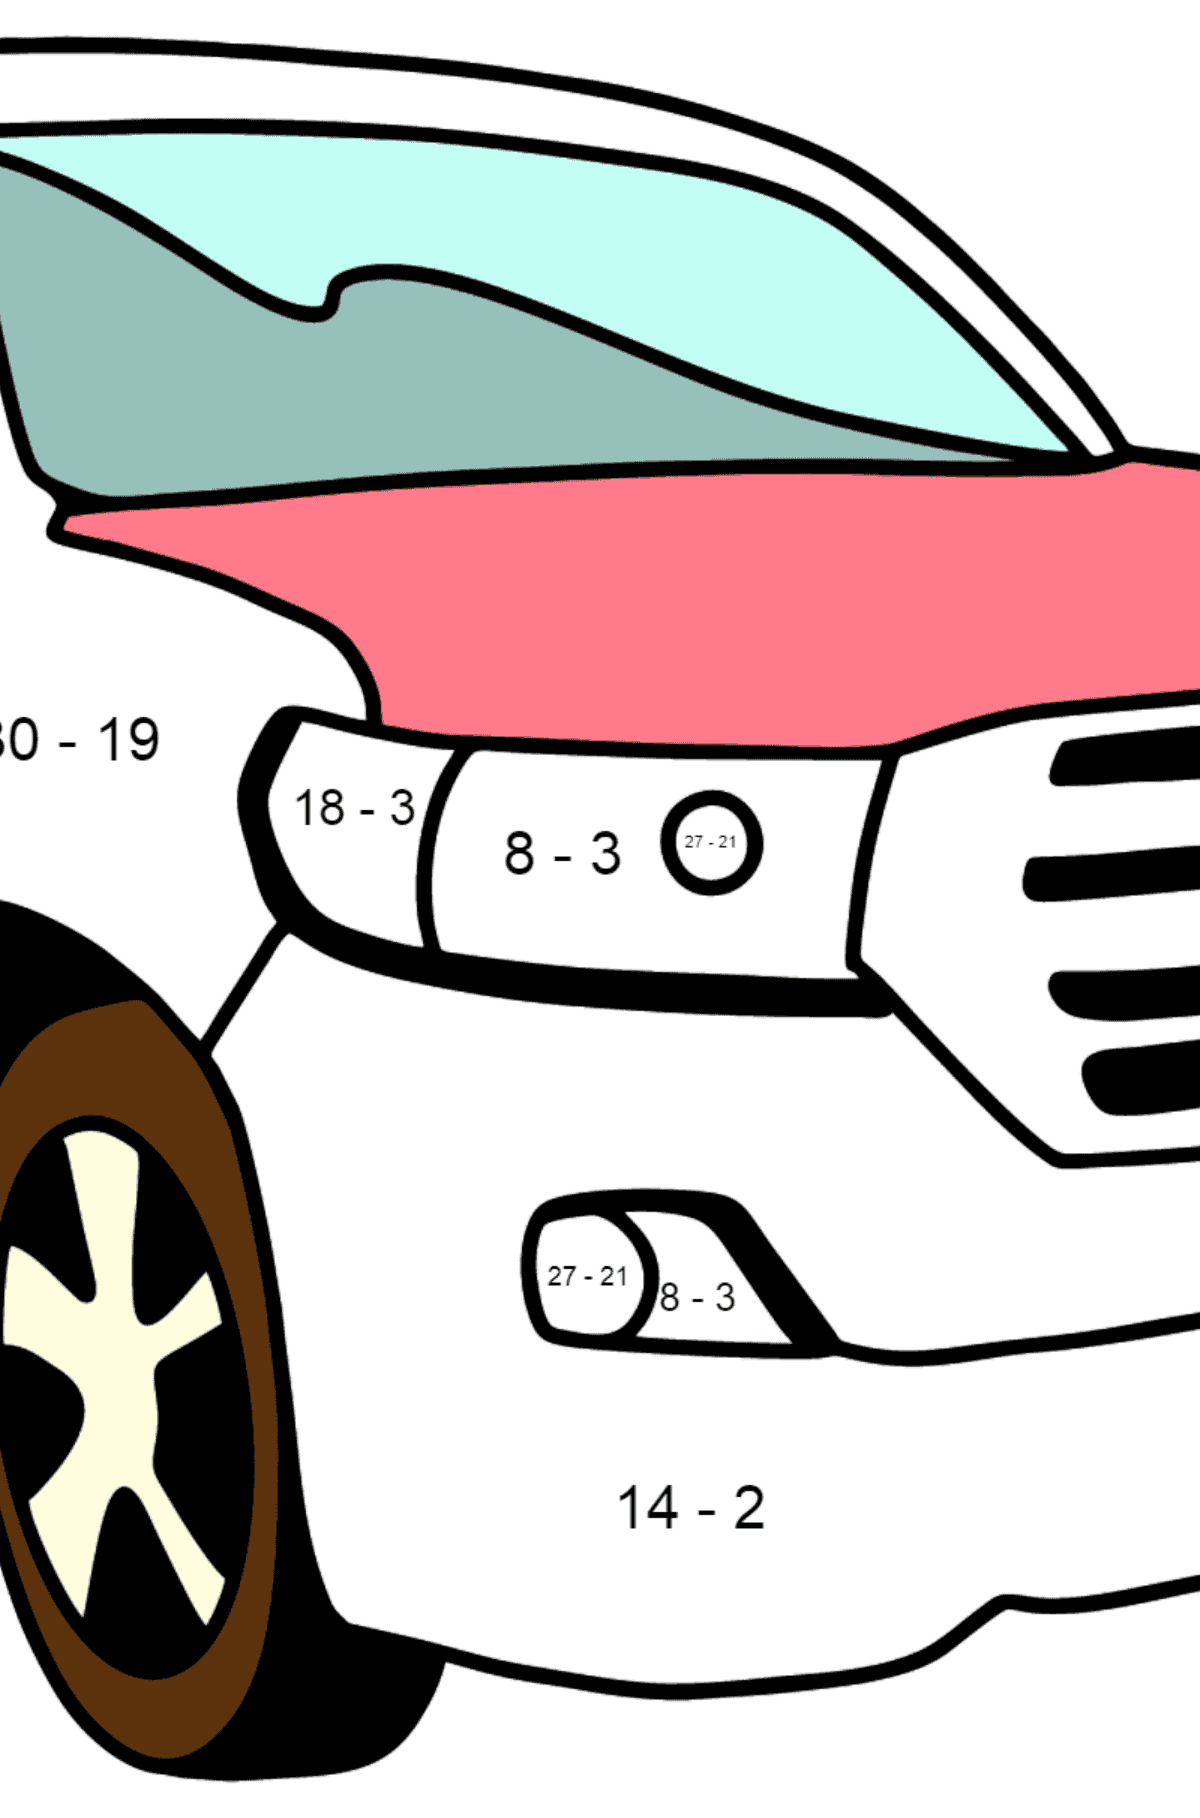 Toyota Land Cruiser Car coloring page - Math Coloring - Subtraction for Kids